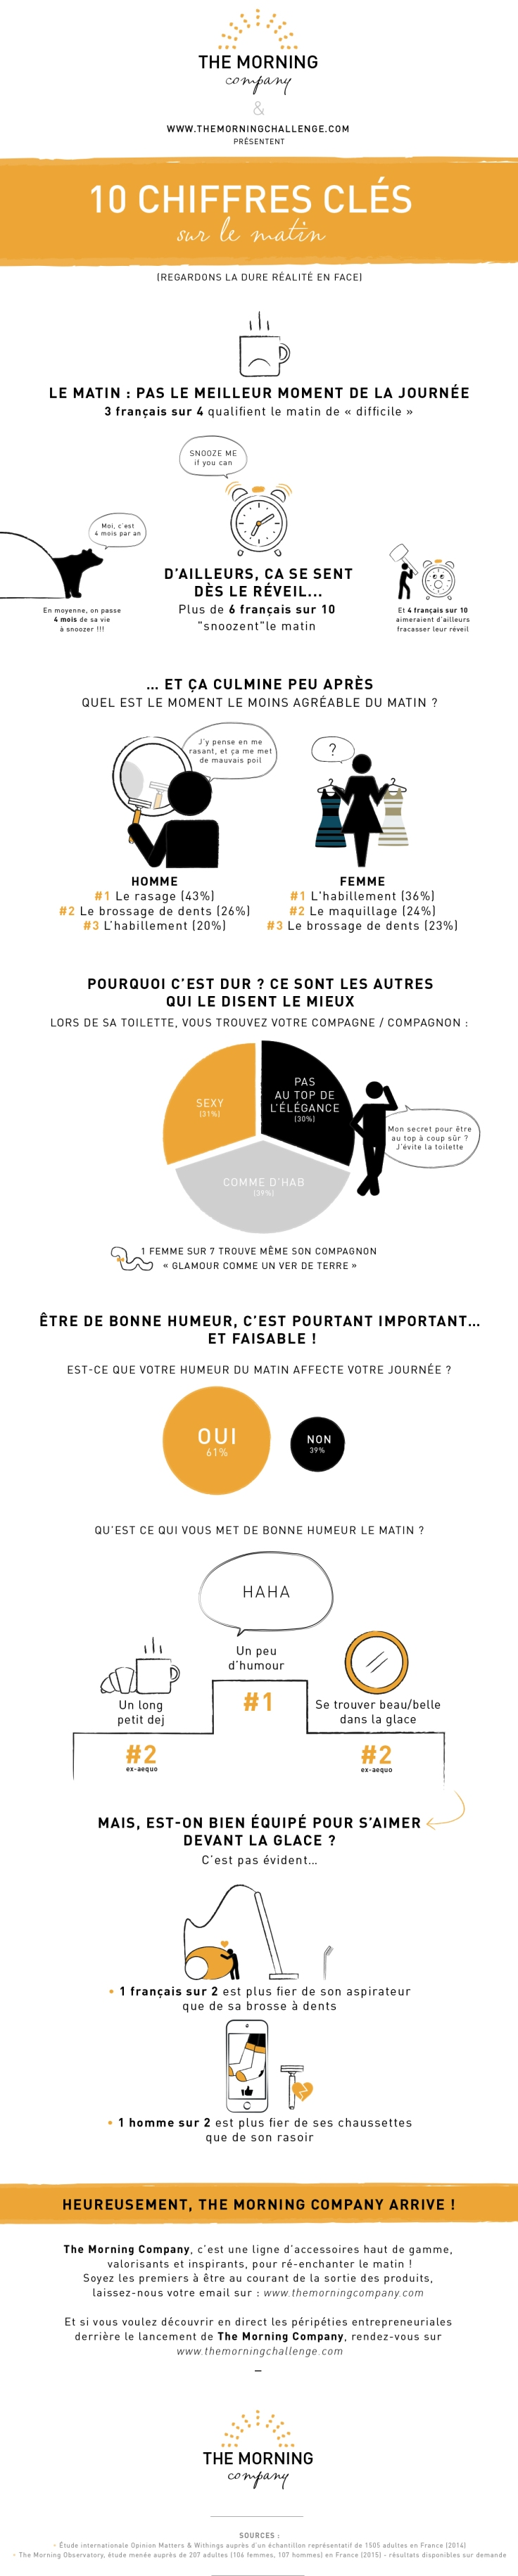 Infographie - 10 chiffres clés du matin - The Morning Challenge